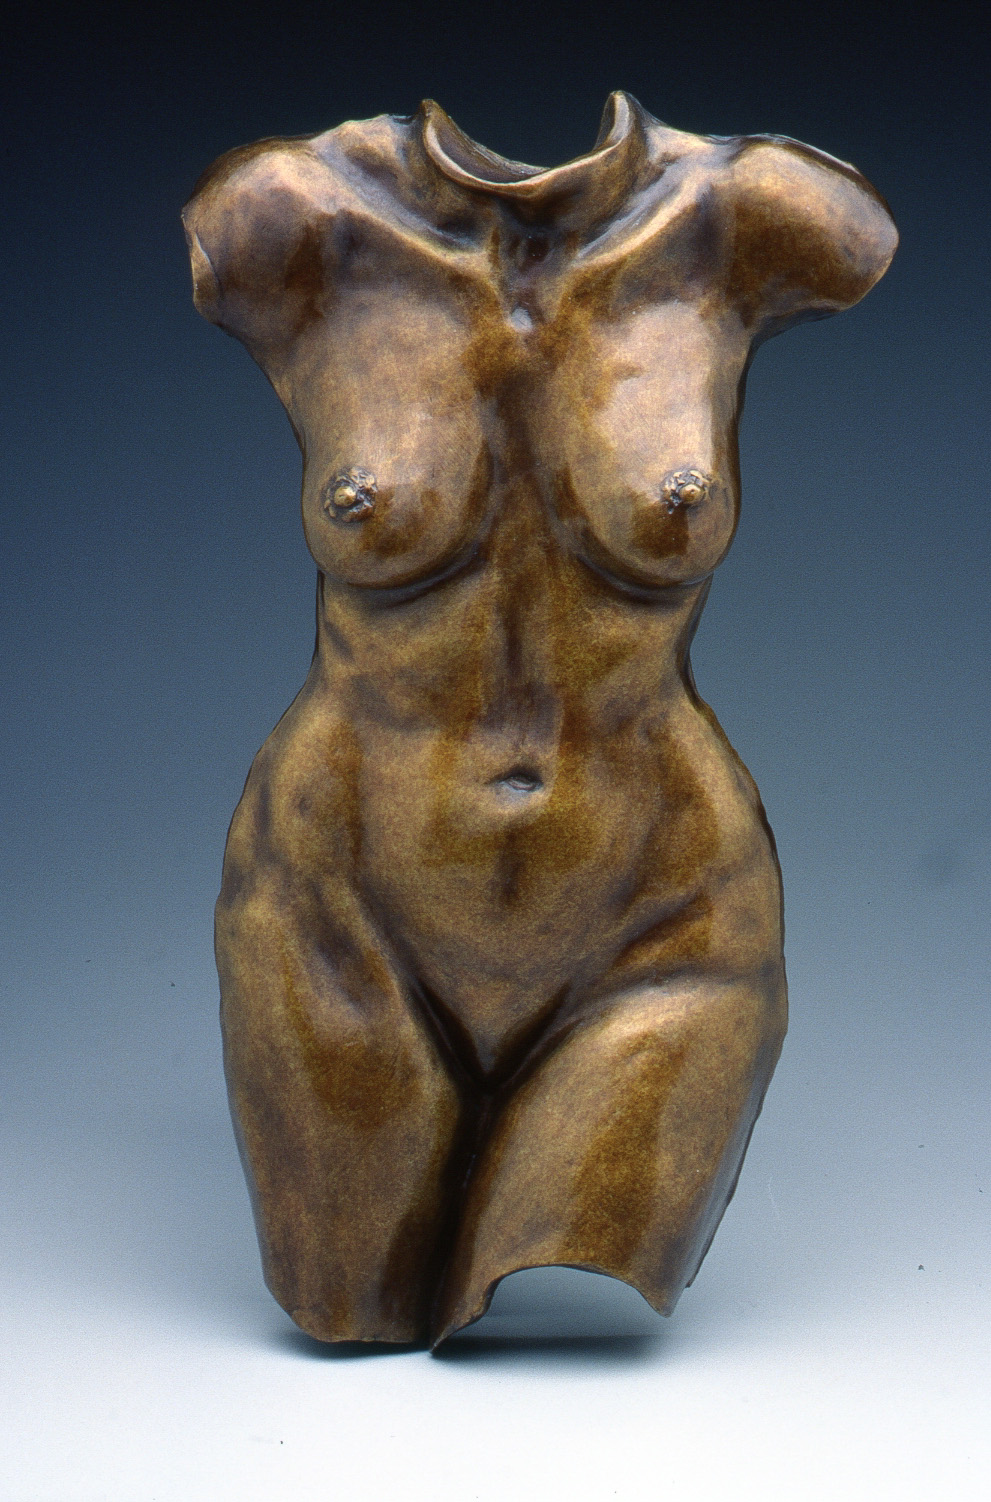 Jo (on a stand) (1997) Bronze, Edition: 9, 16.6x9x2in. $1,950